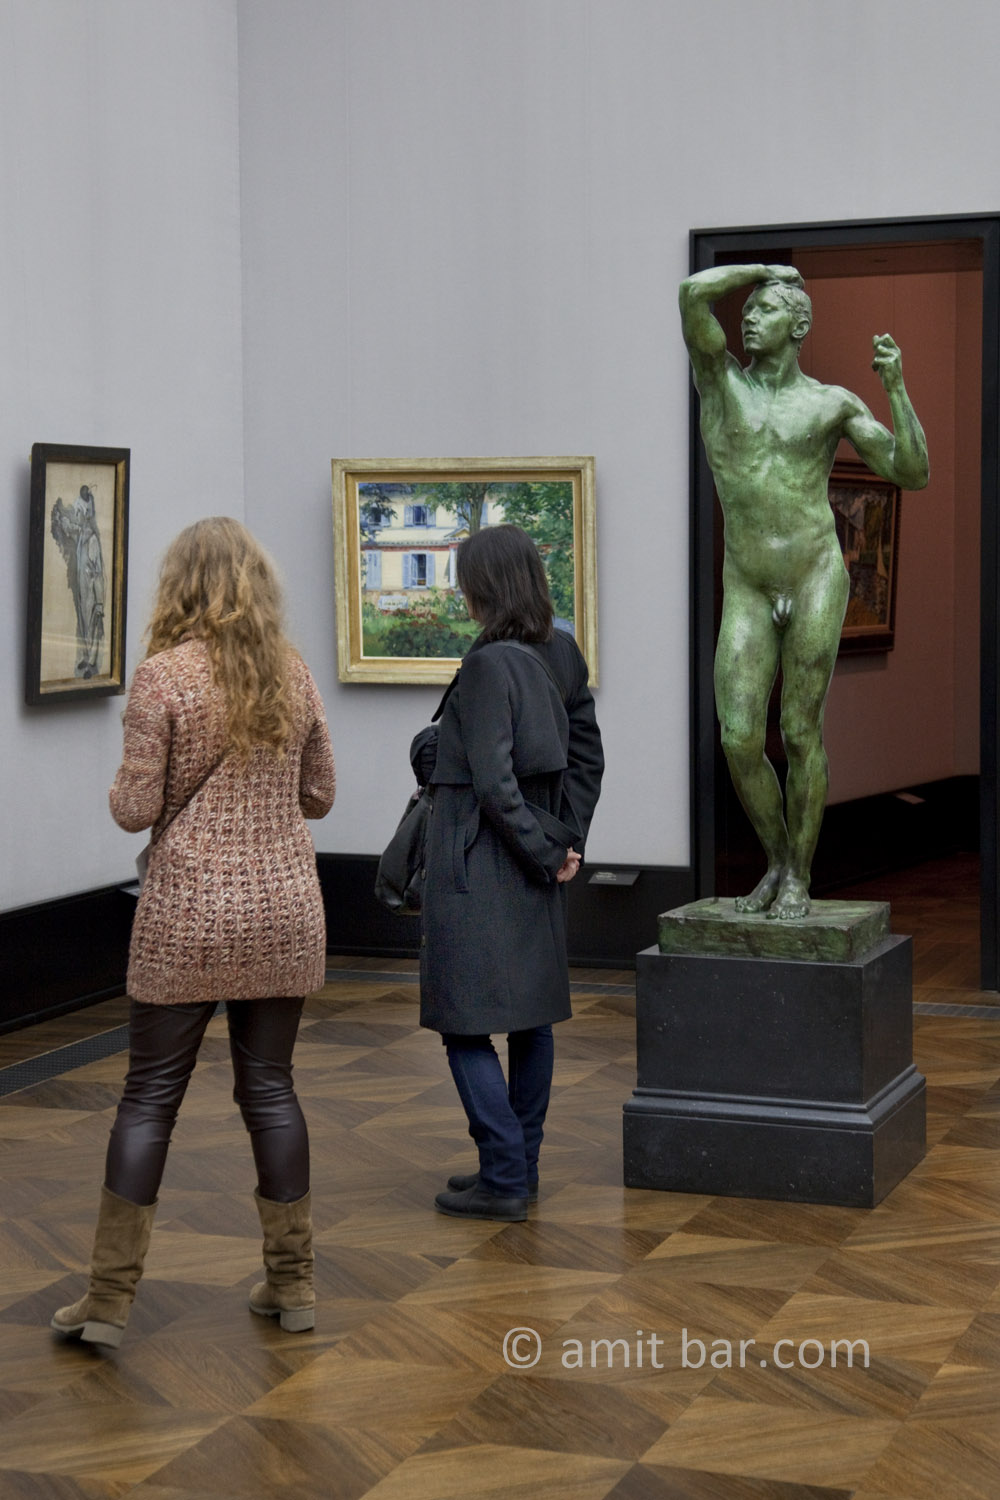 Berlin: Looking.  Two visitors at the museum, Alte Nationalgalerie